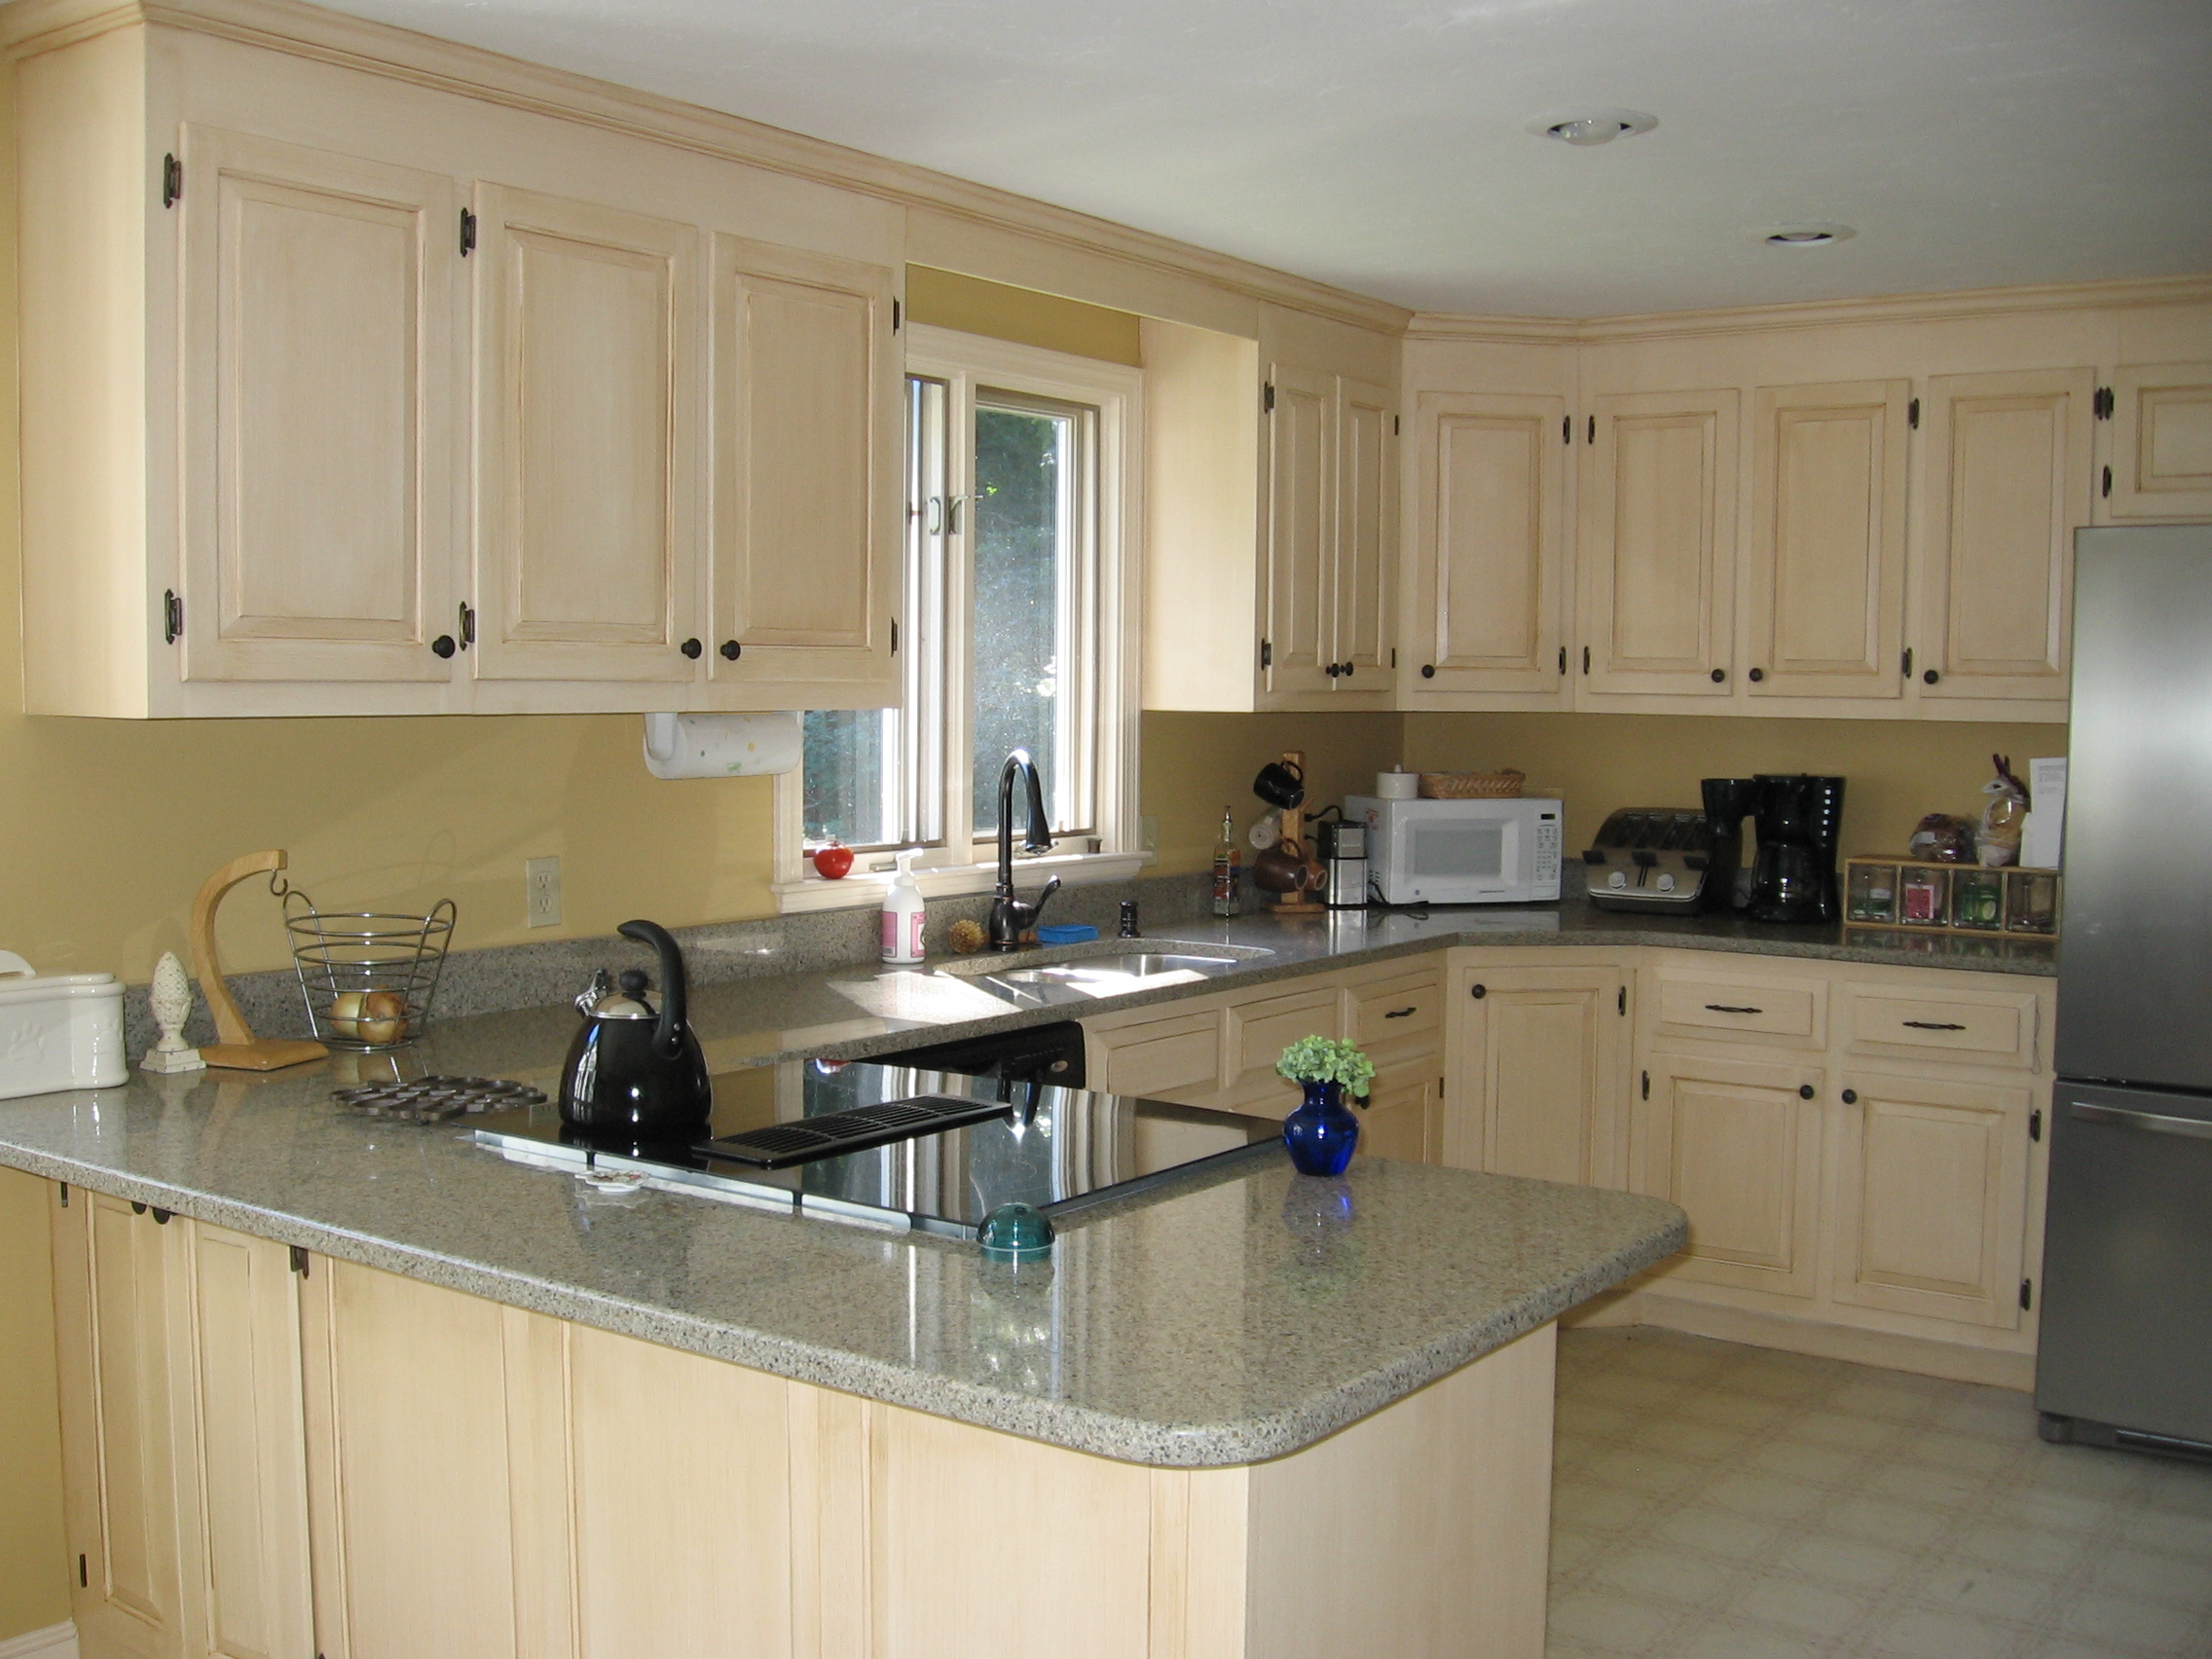 Special discounts on painting kitchen cabinet refinishing for Painting kitchen cabinets